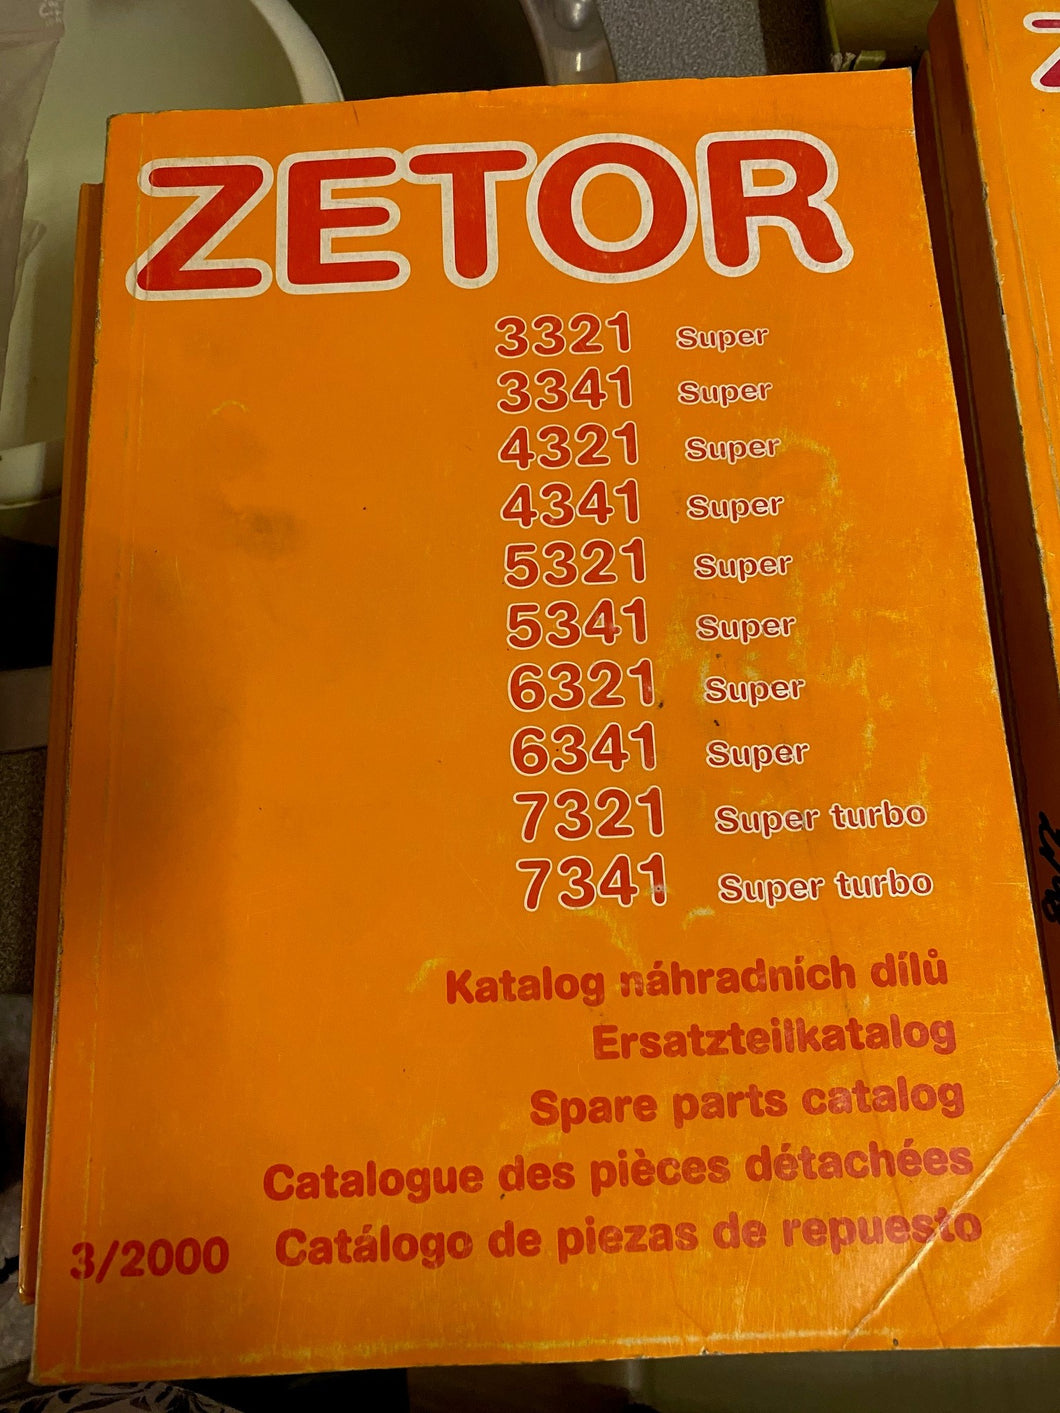 Spare Parts Manual for Zetor 3321 Super to 7341 Super Turbo